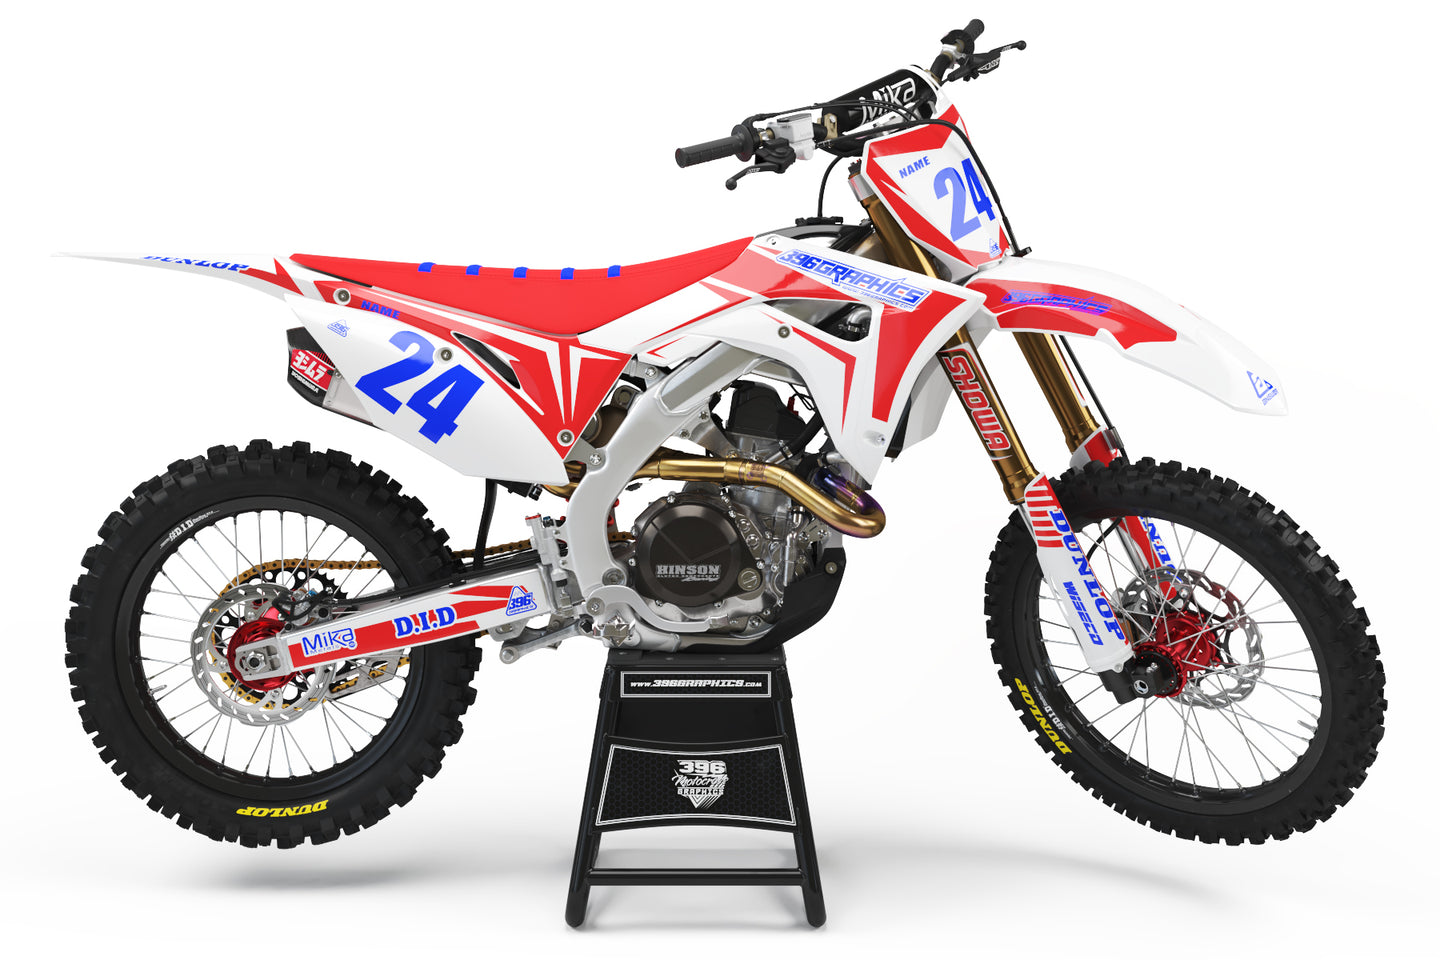 JUDGE GRAPHICS FOR HONDA